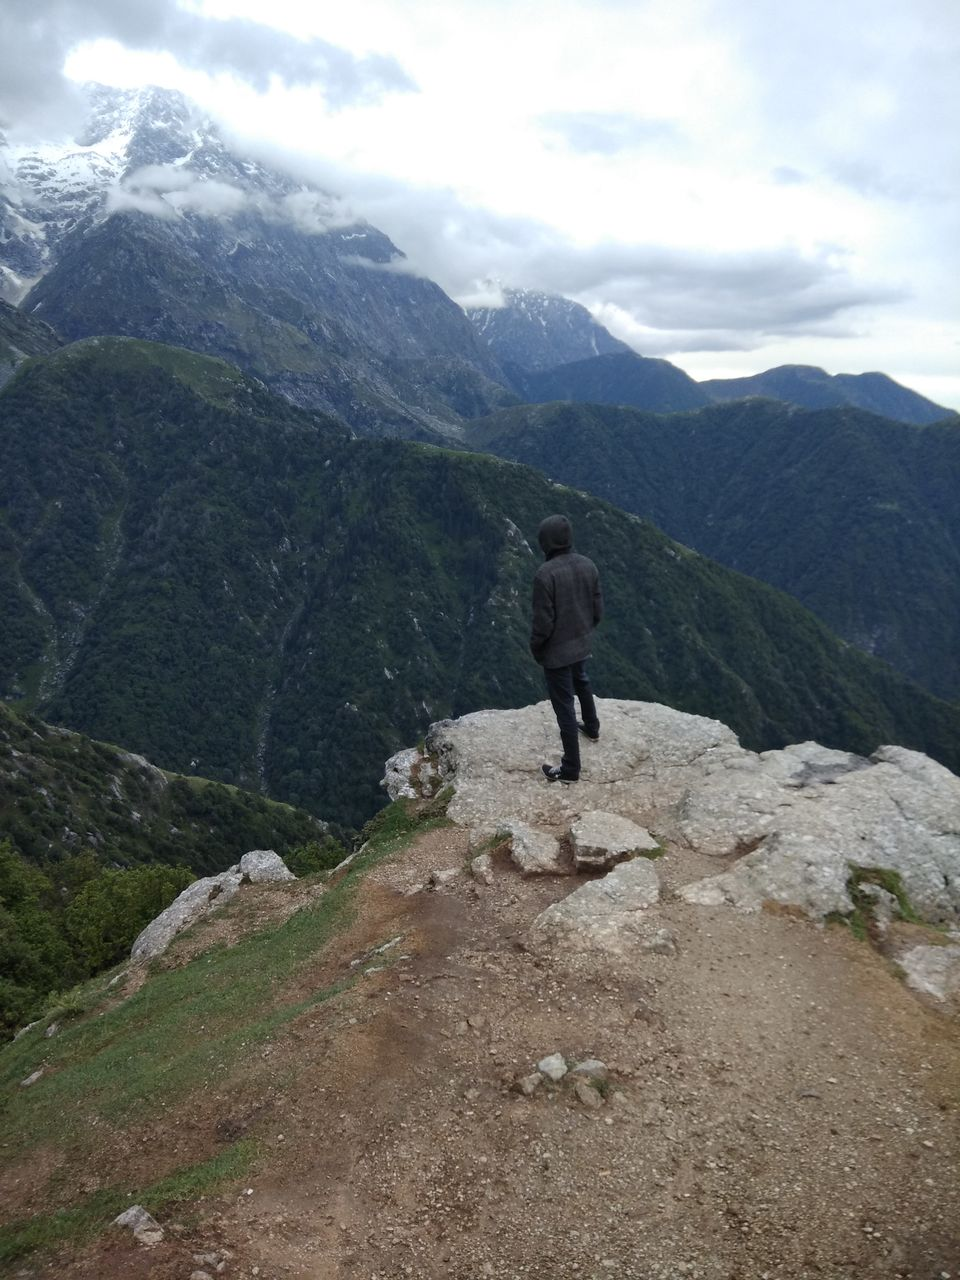 Photos of My First Solo Trip to Himachal 1/1 by Aman Raghuwanshi